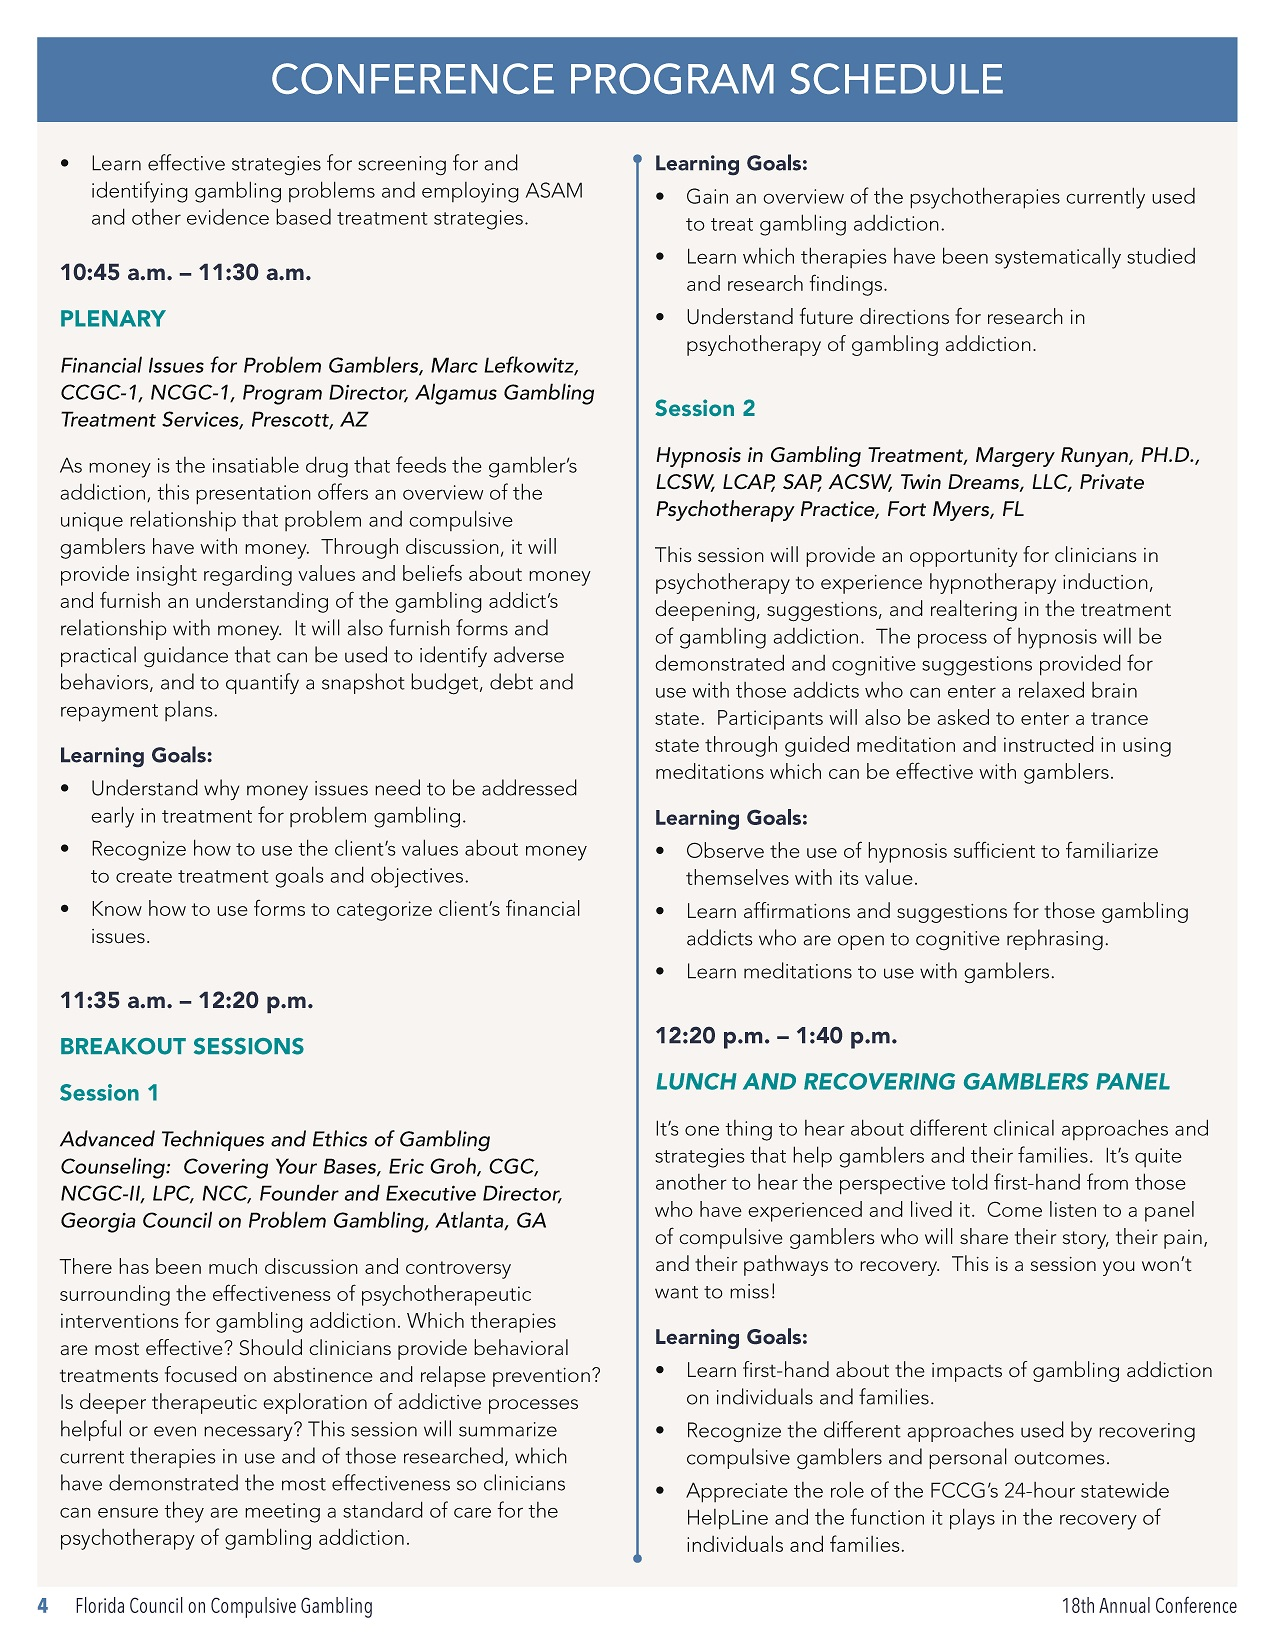 18th Annual Conference Program Schedule_Page_2